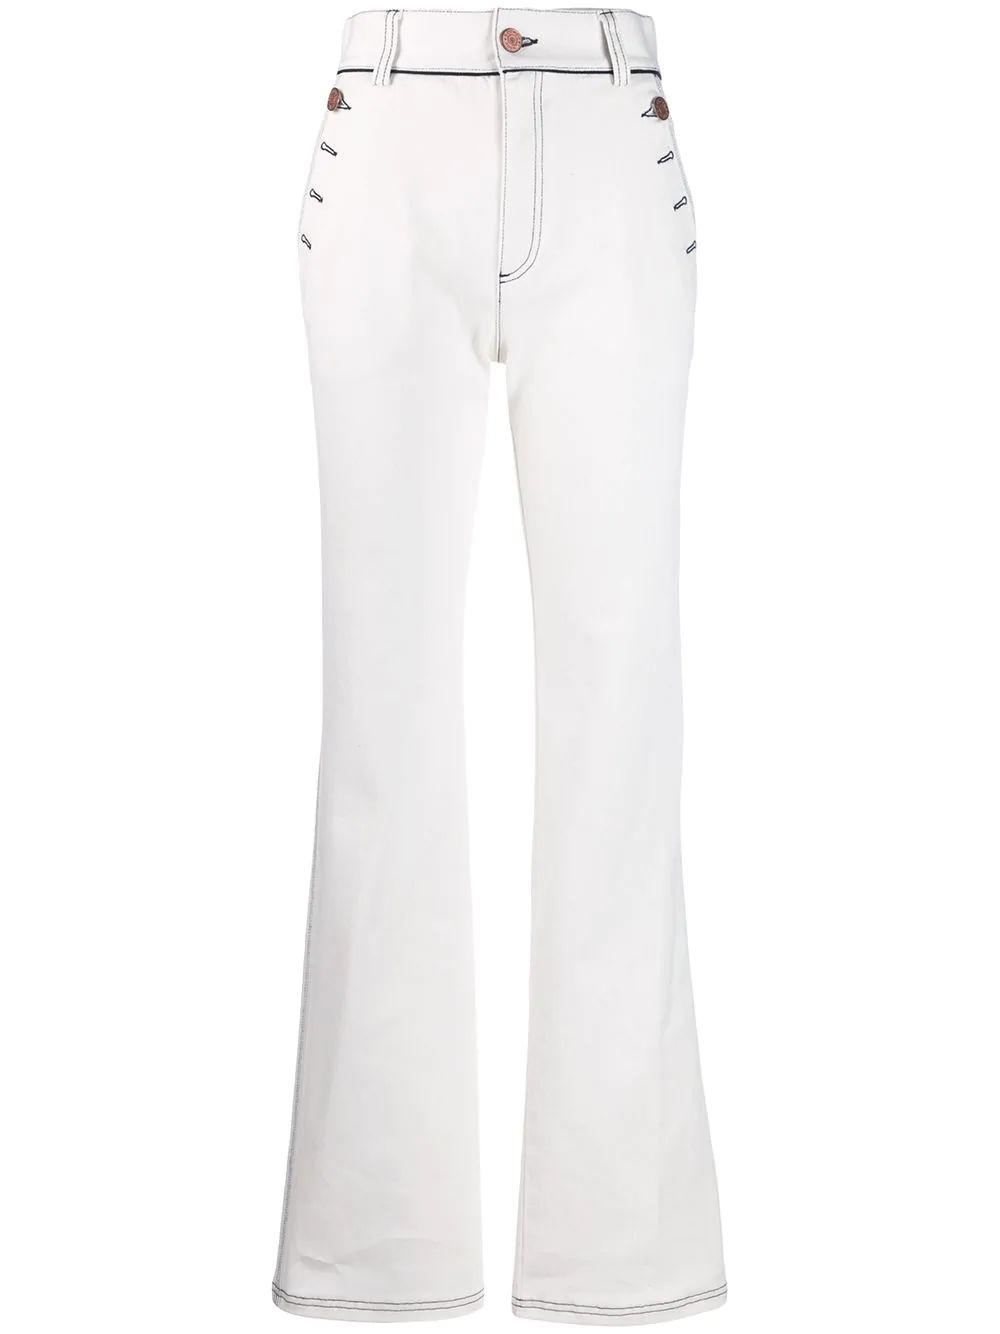 High Rise Boot Cut Denim With Buttons at Hem